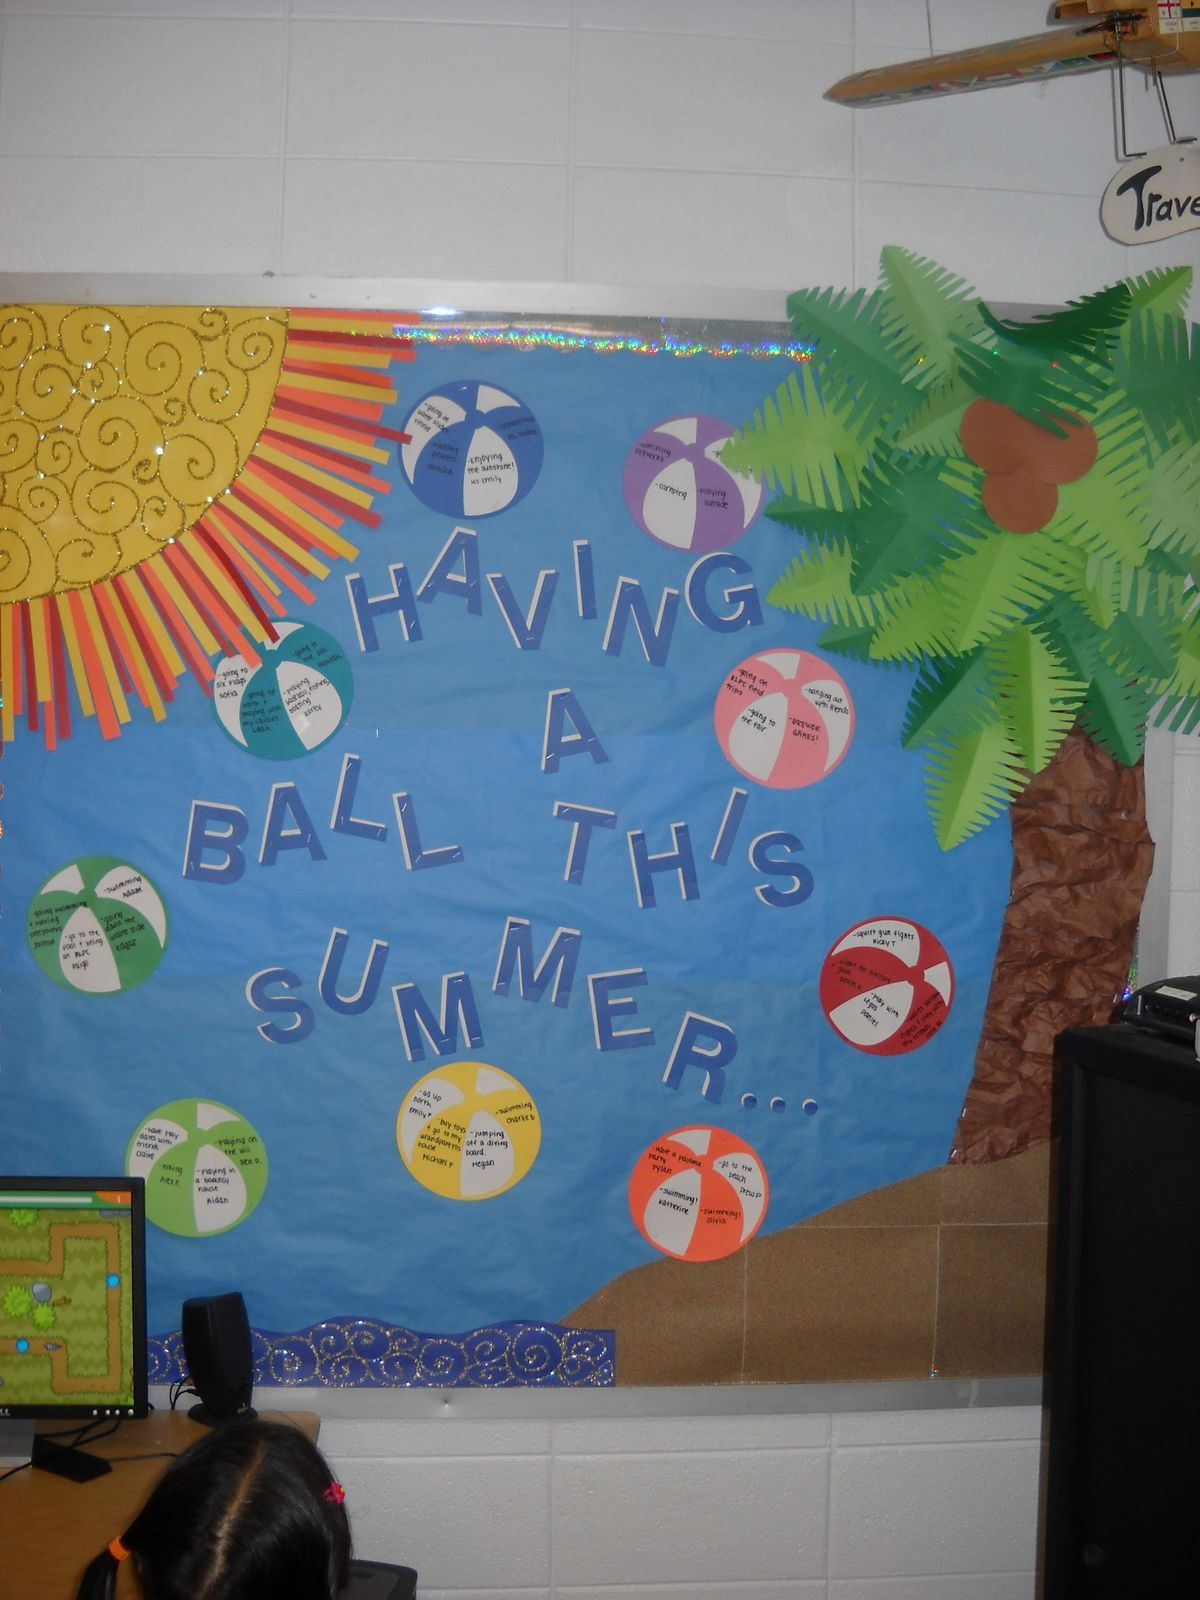 Go green vegetable bulletin board idea myclassroomideas com - Having A Ball This Summer Classroom Bulletin Board Idea Myclassroomideas Com